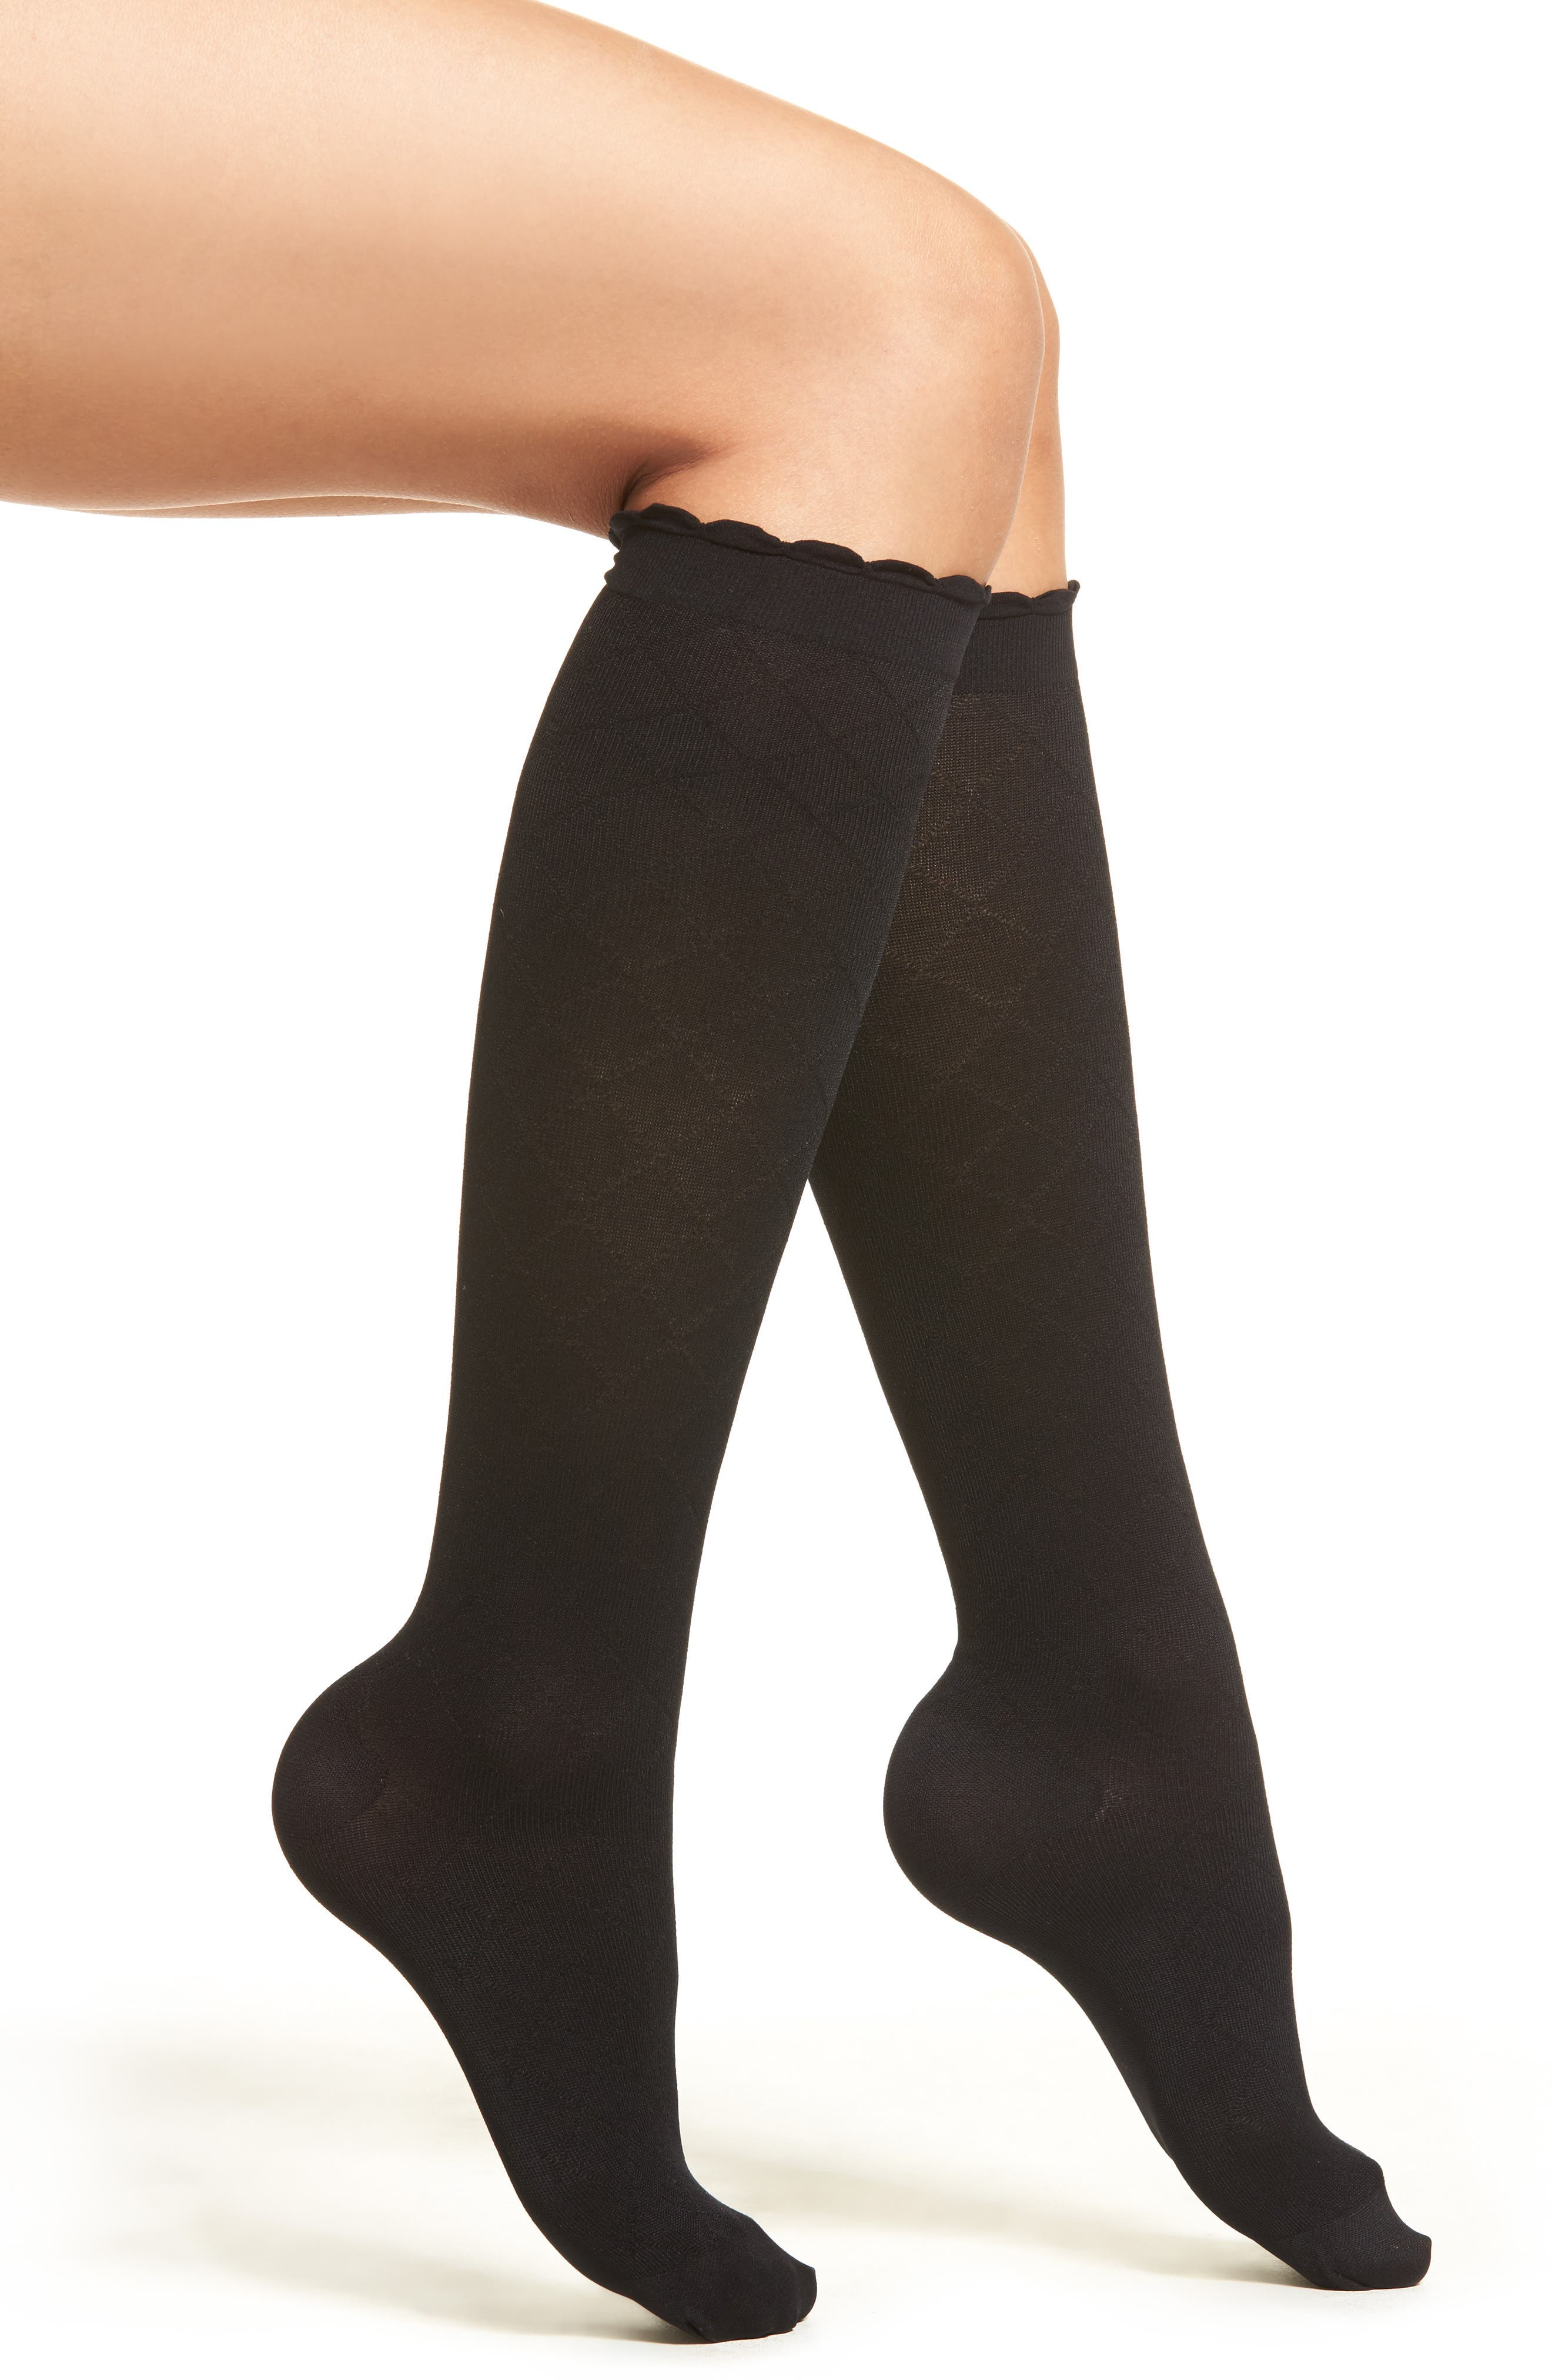 Diamond Compression Knee High Socks,                             Main thumbnail 1, color,                             Black